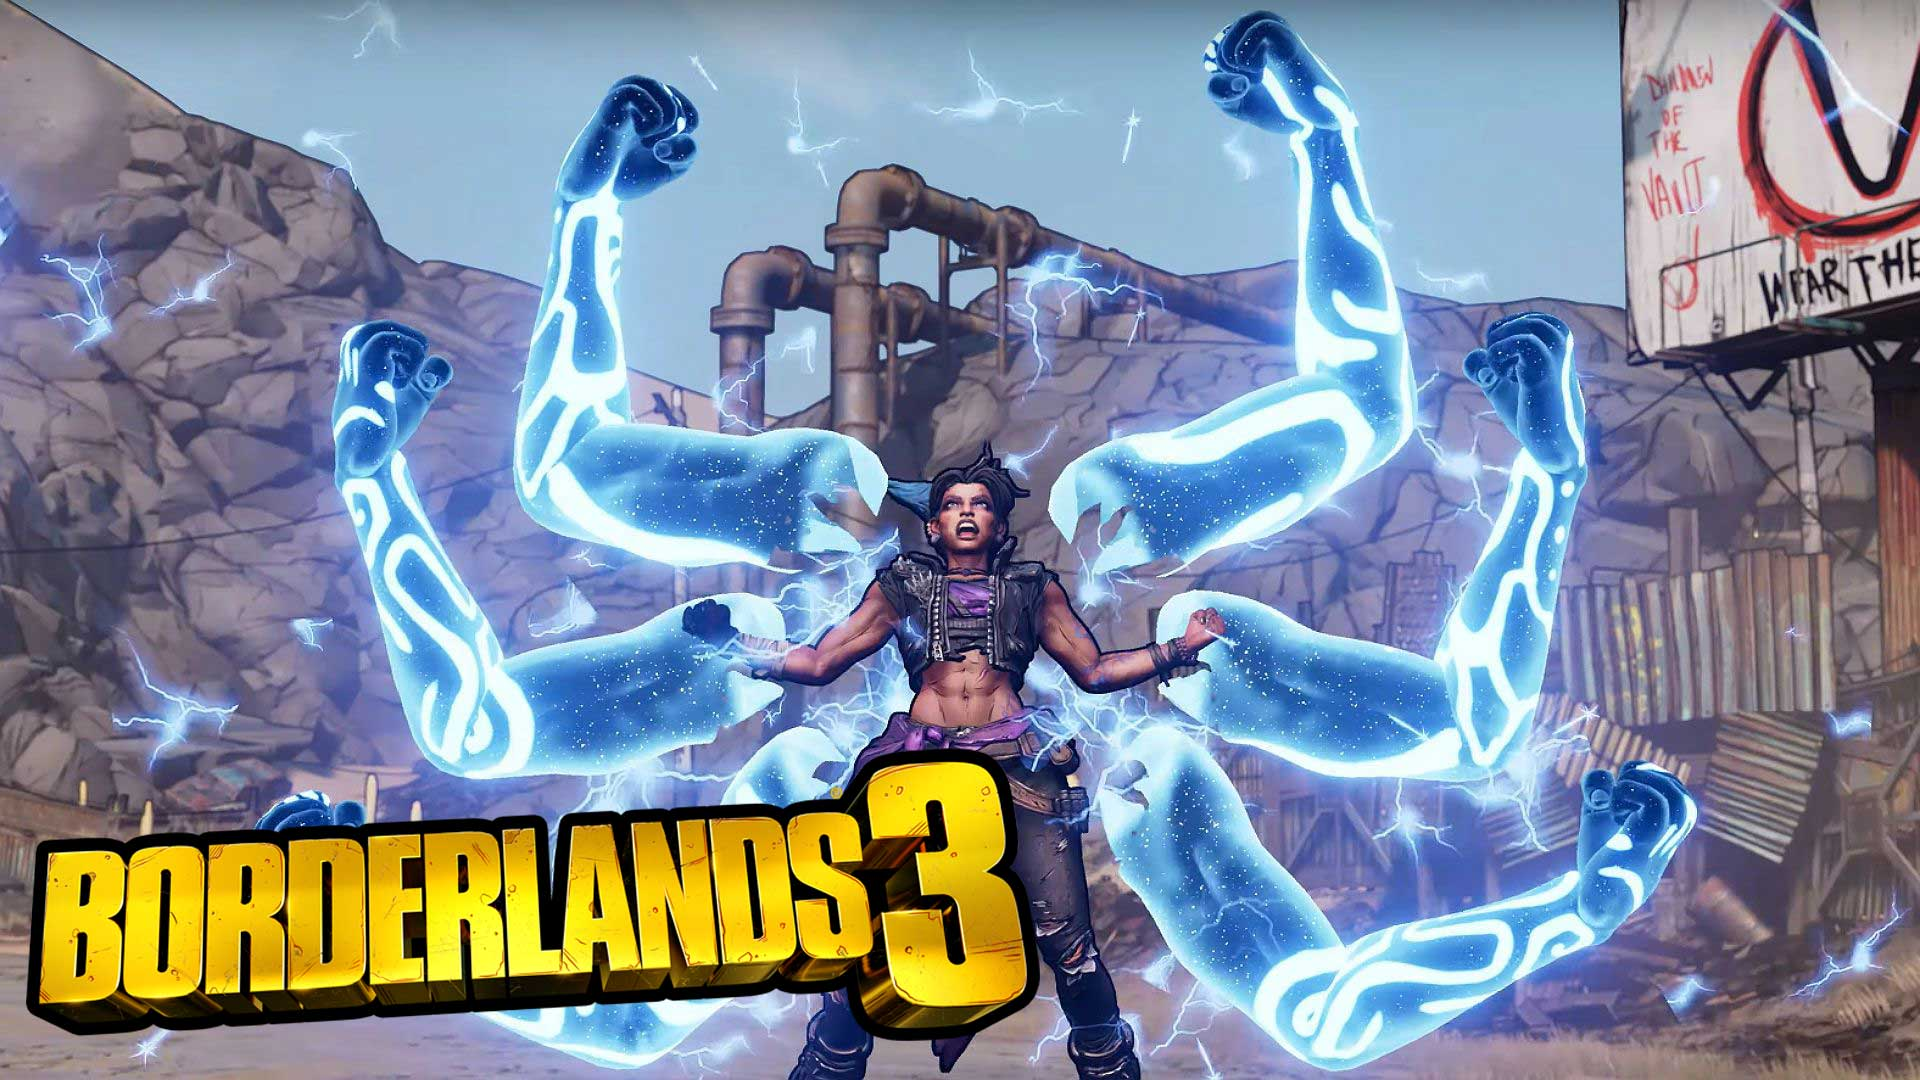 Borderlands 3 Release Date To Be Announced This Week